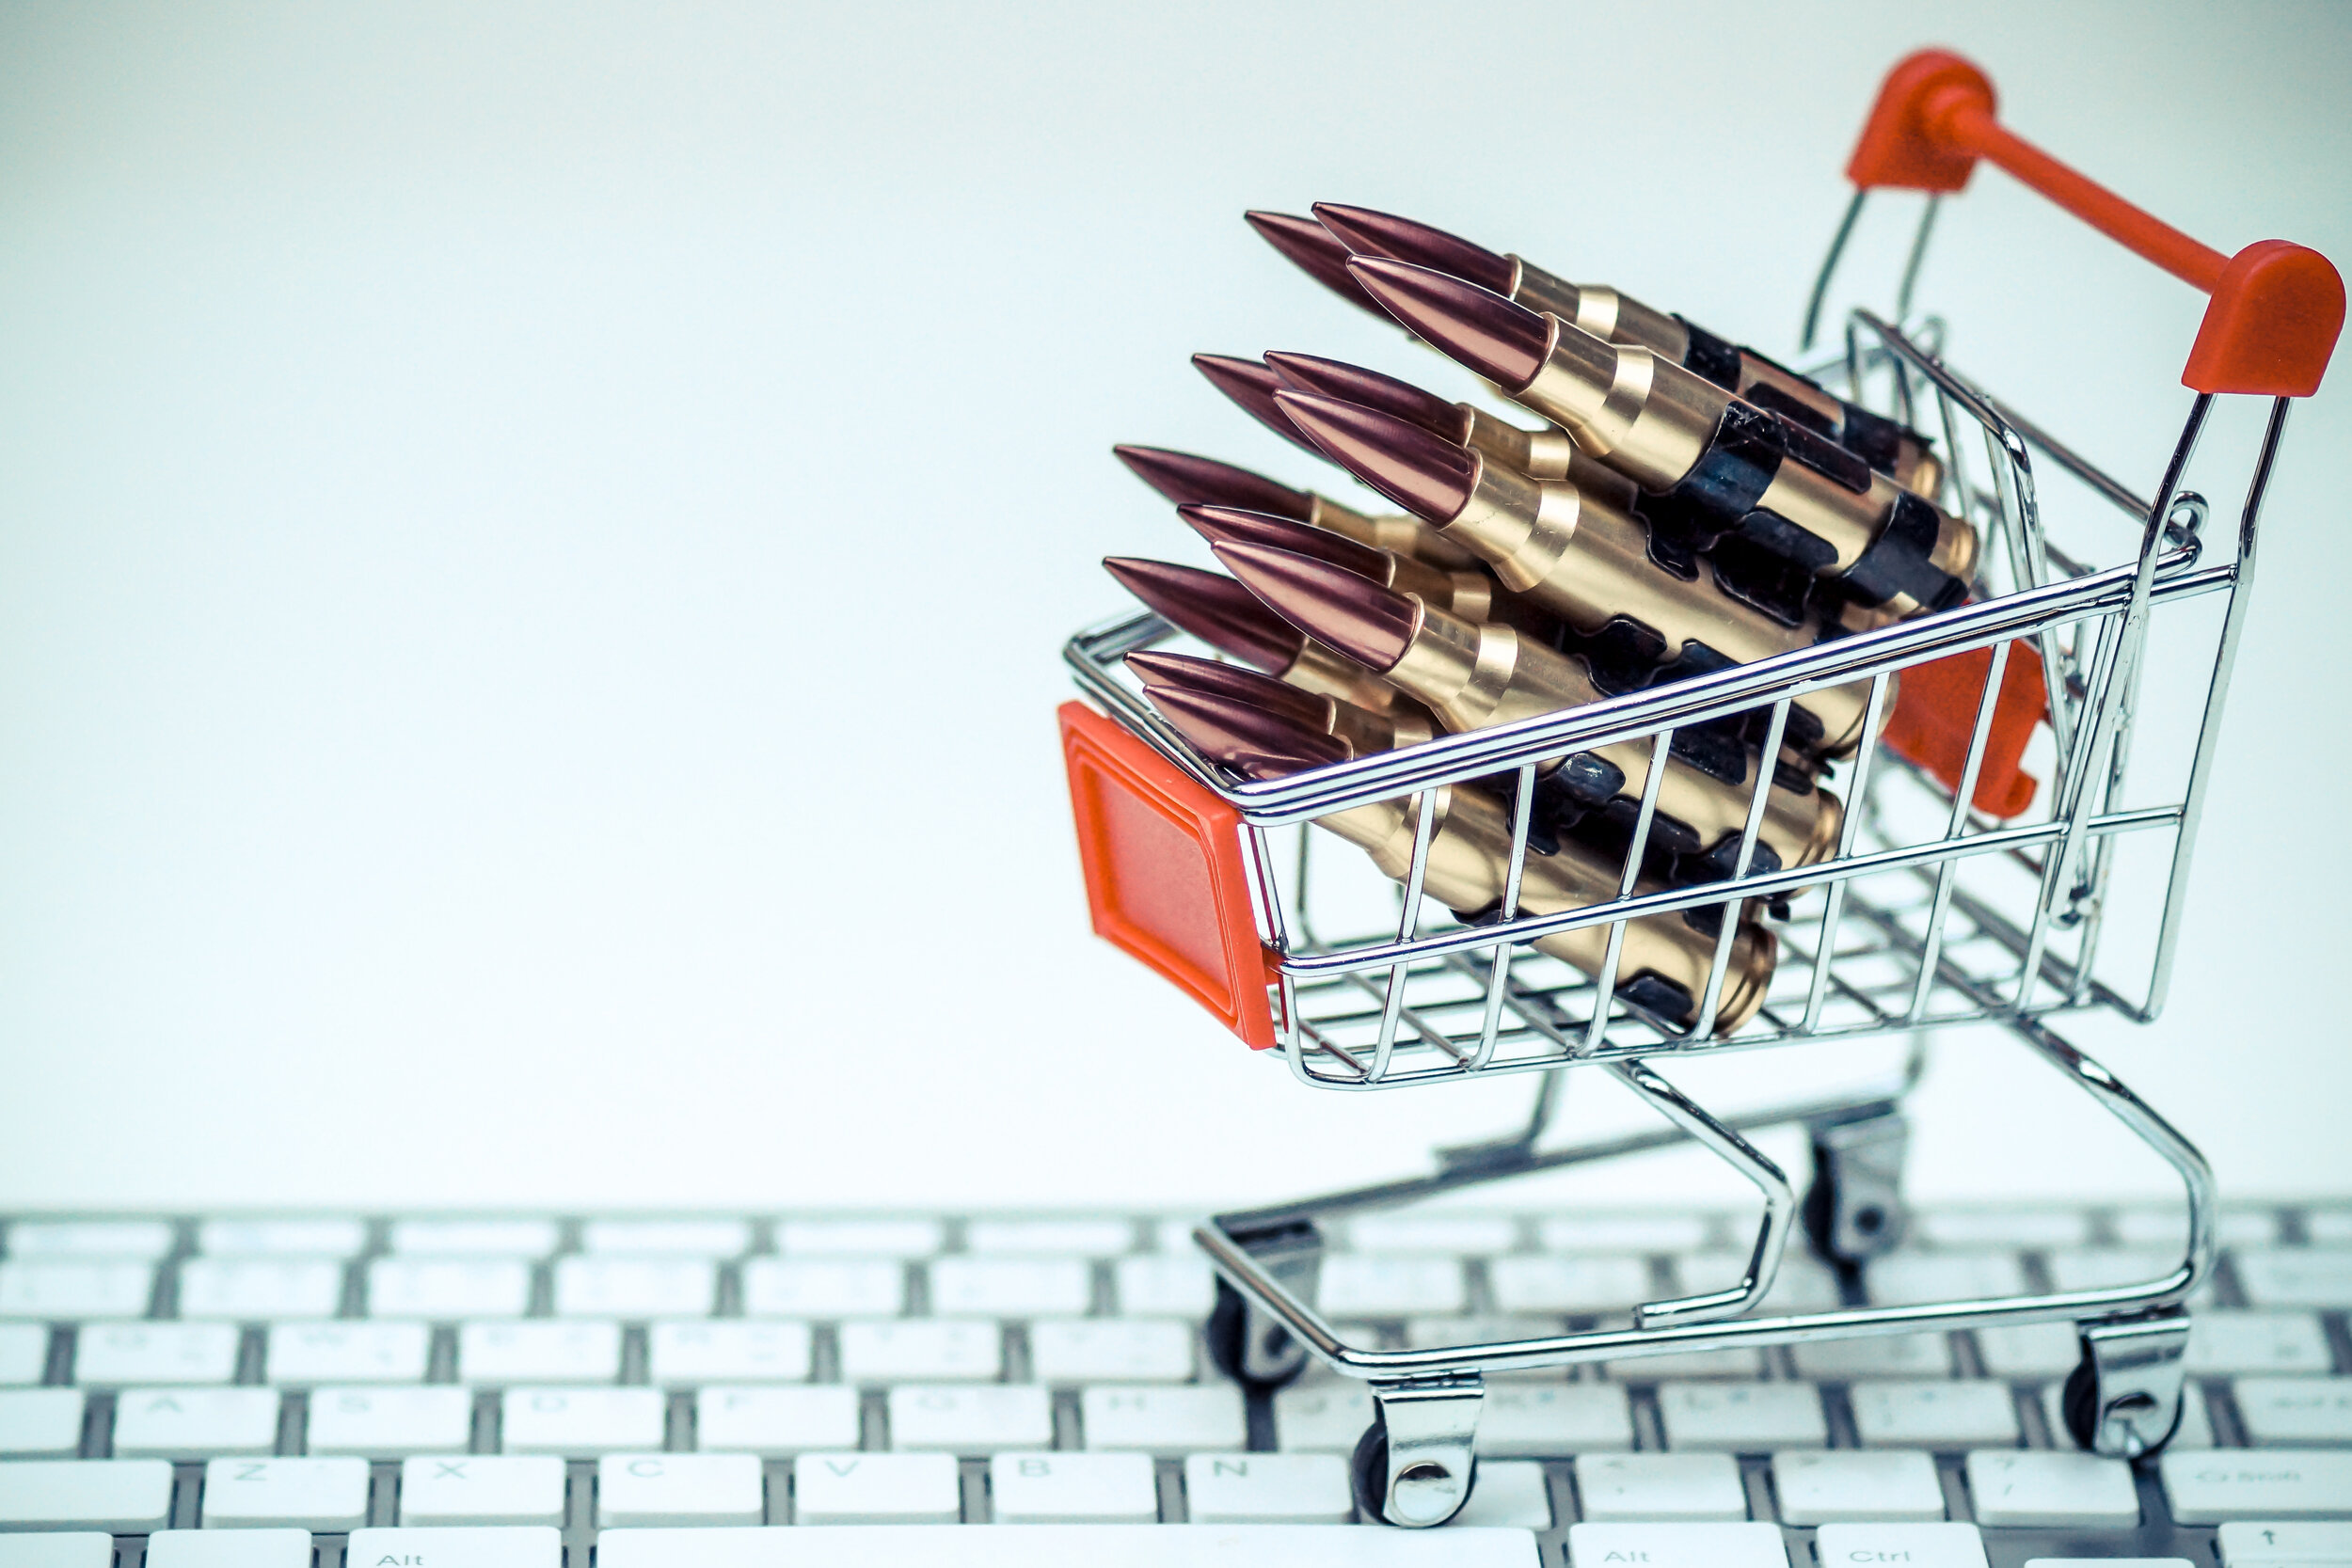 Weapons for Sale: How online communities contribute to the illegal proliferation of illicit weapons